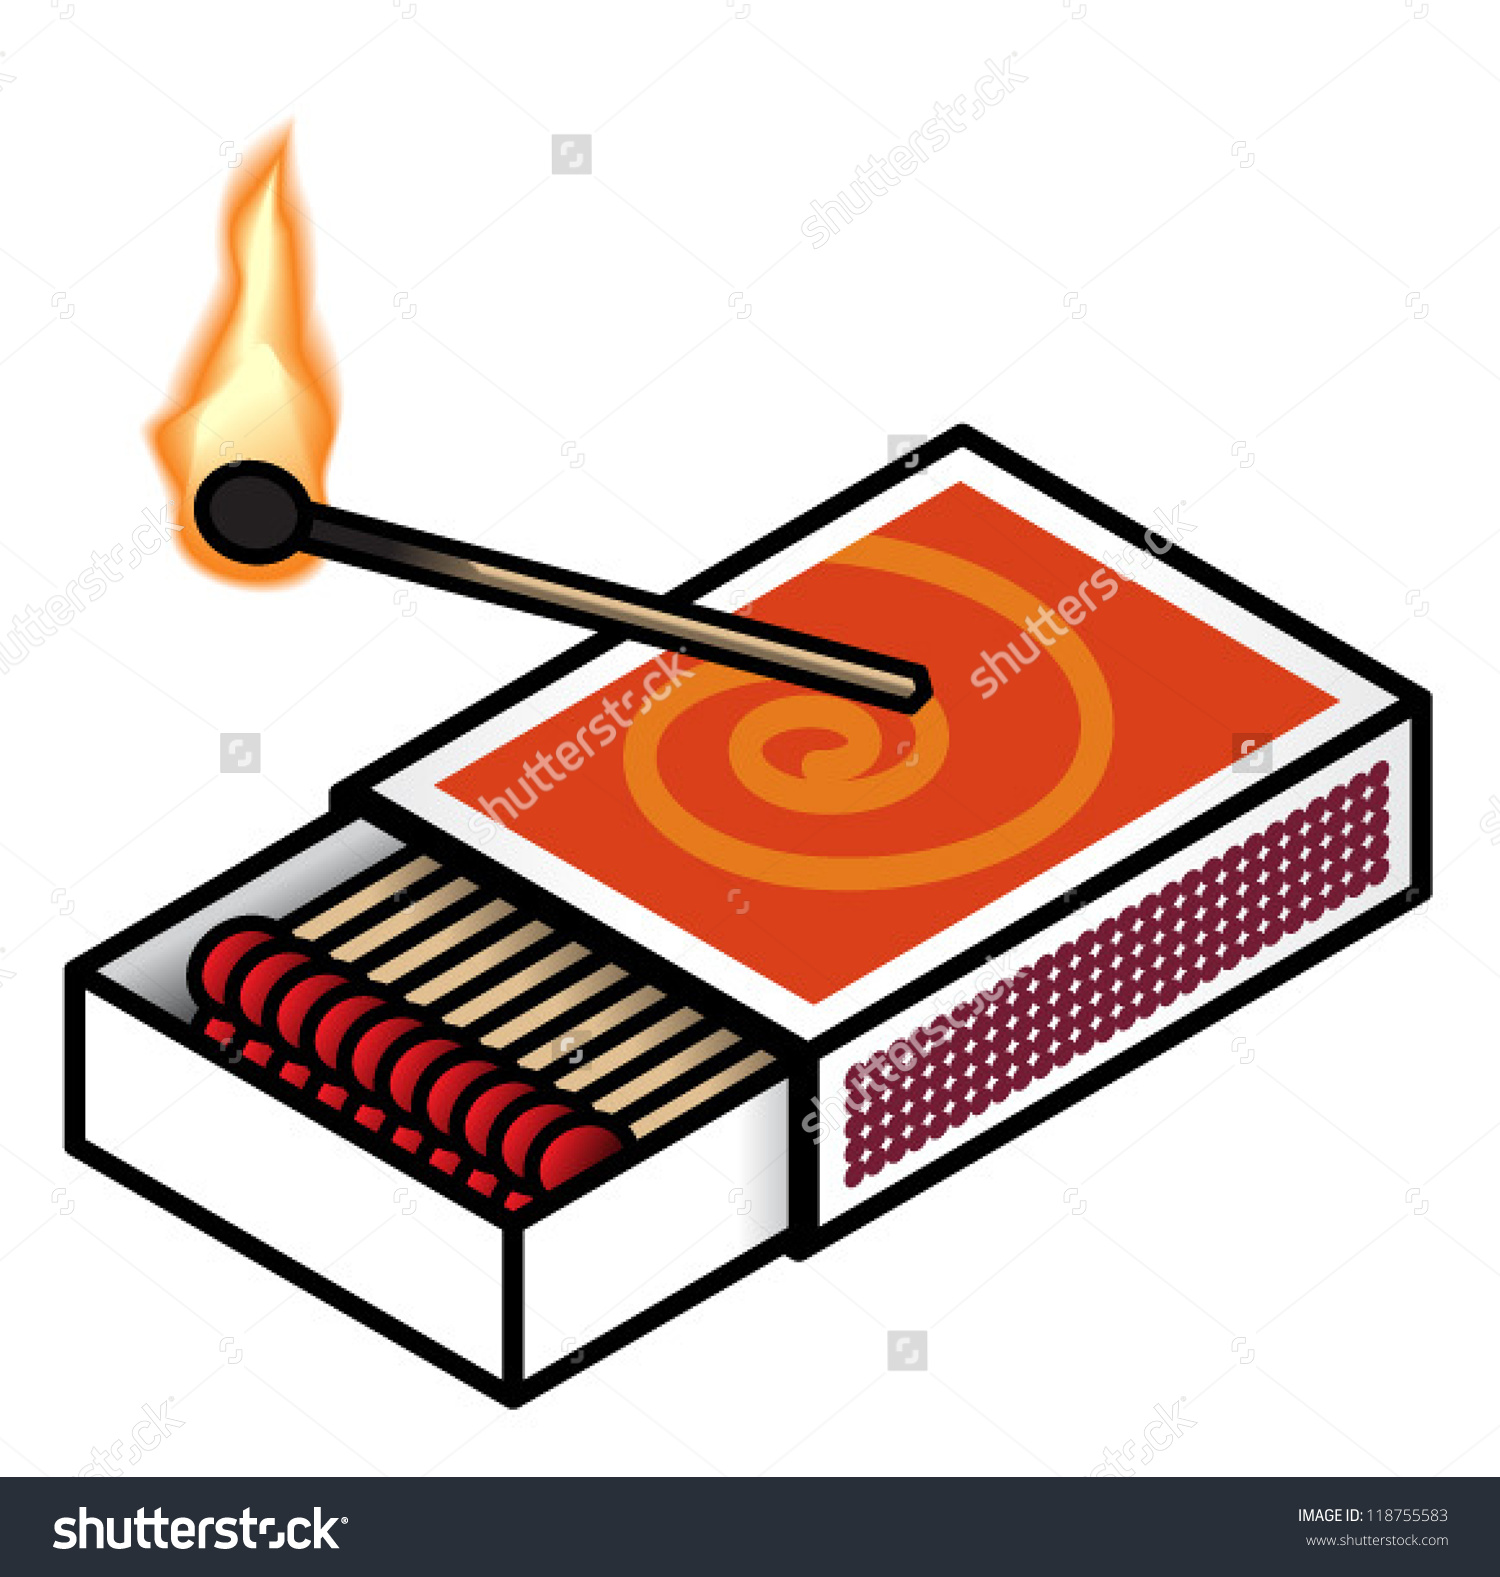 Lit Matches Clip Art.